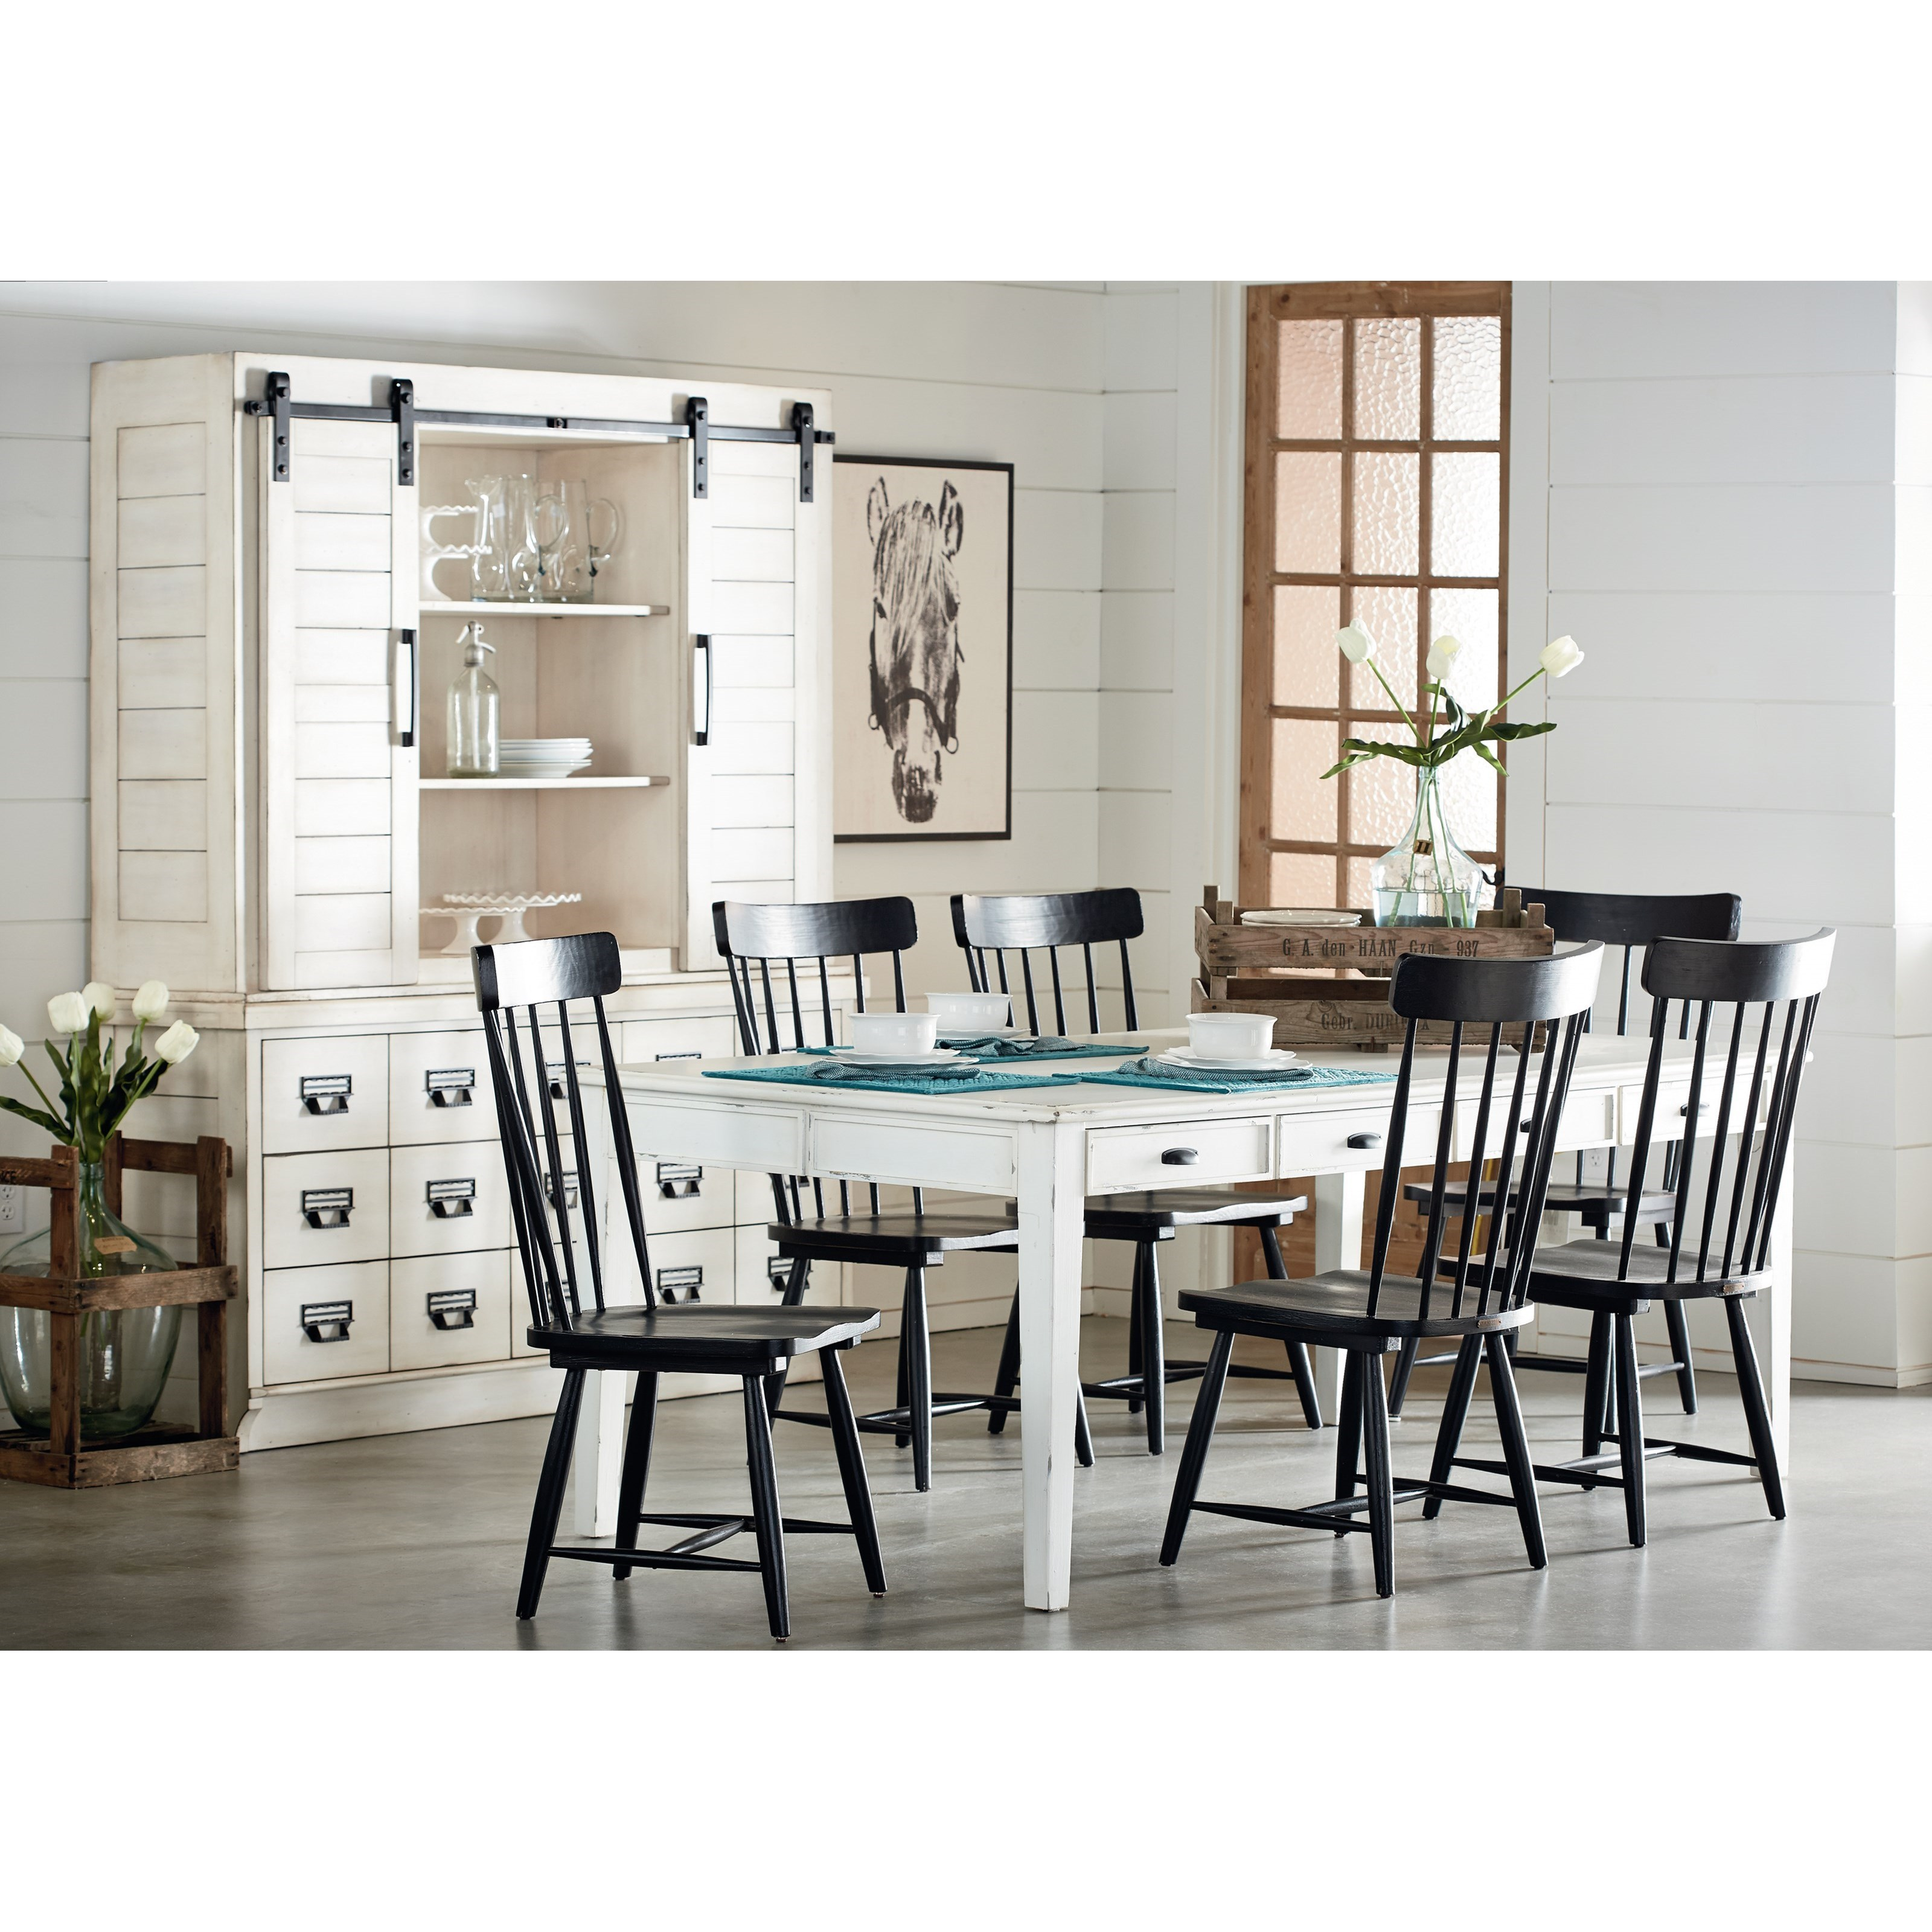 Joanna Gaines Farmhouse Bar Stools Magnolia Home By Joanna Gaines Farmhouse Kitchen Dining